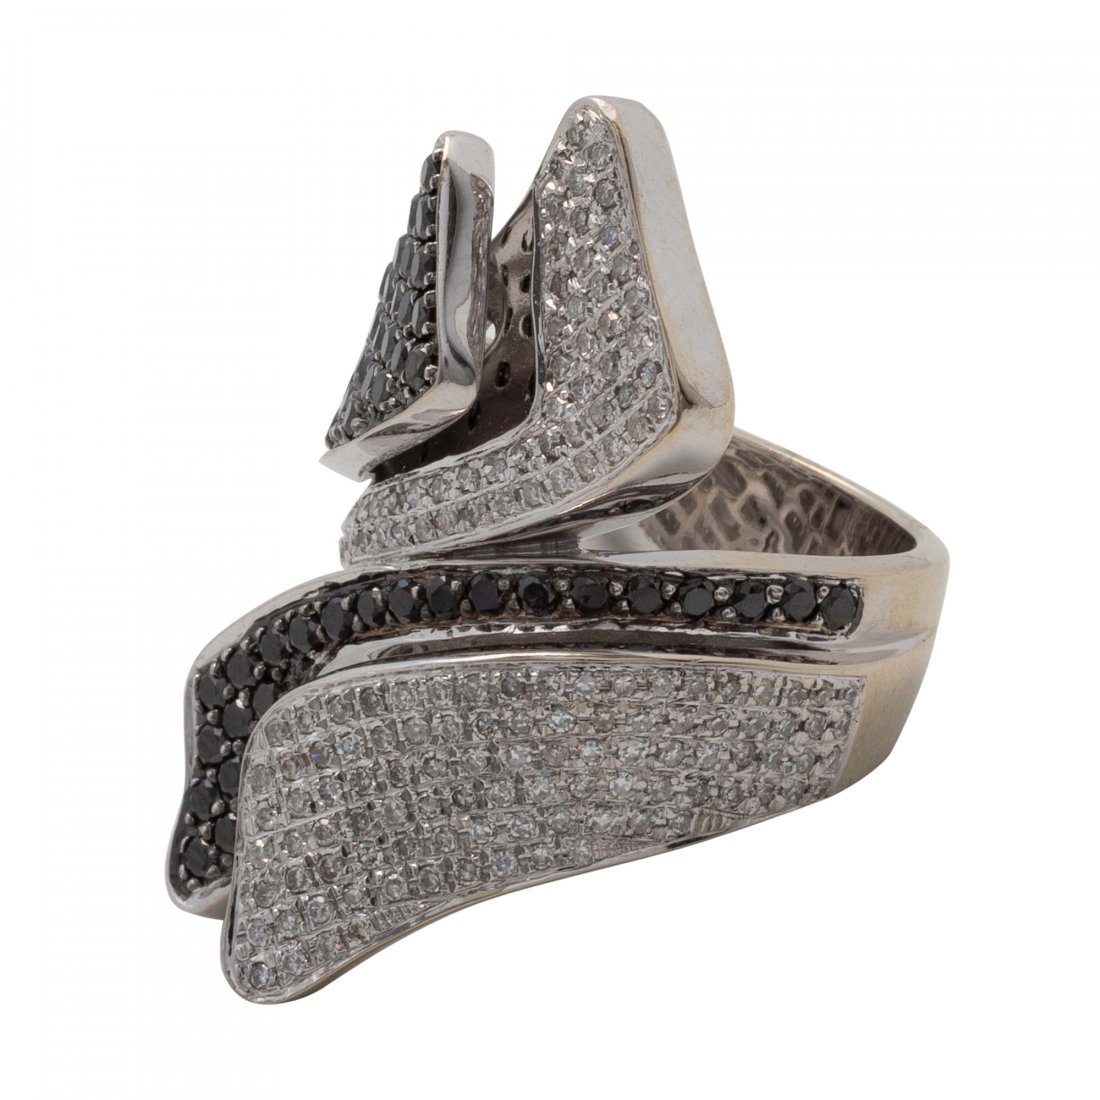 Gold, Black Diamond and Diamond Ring